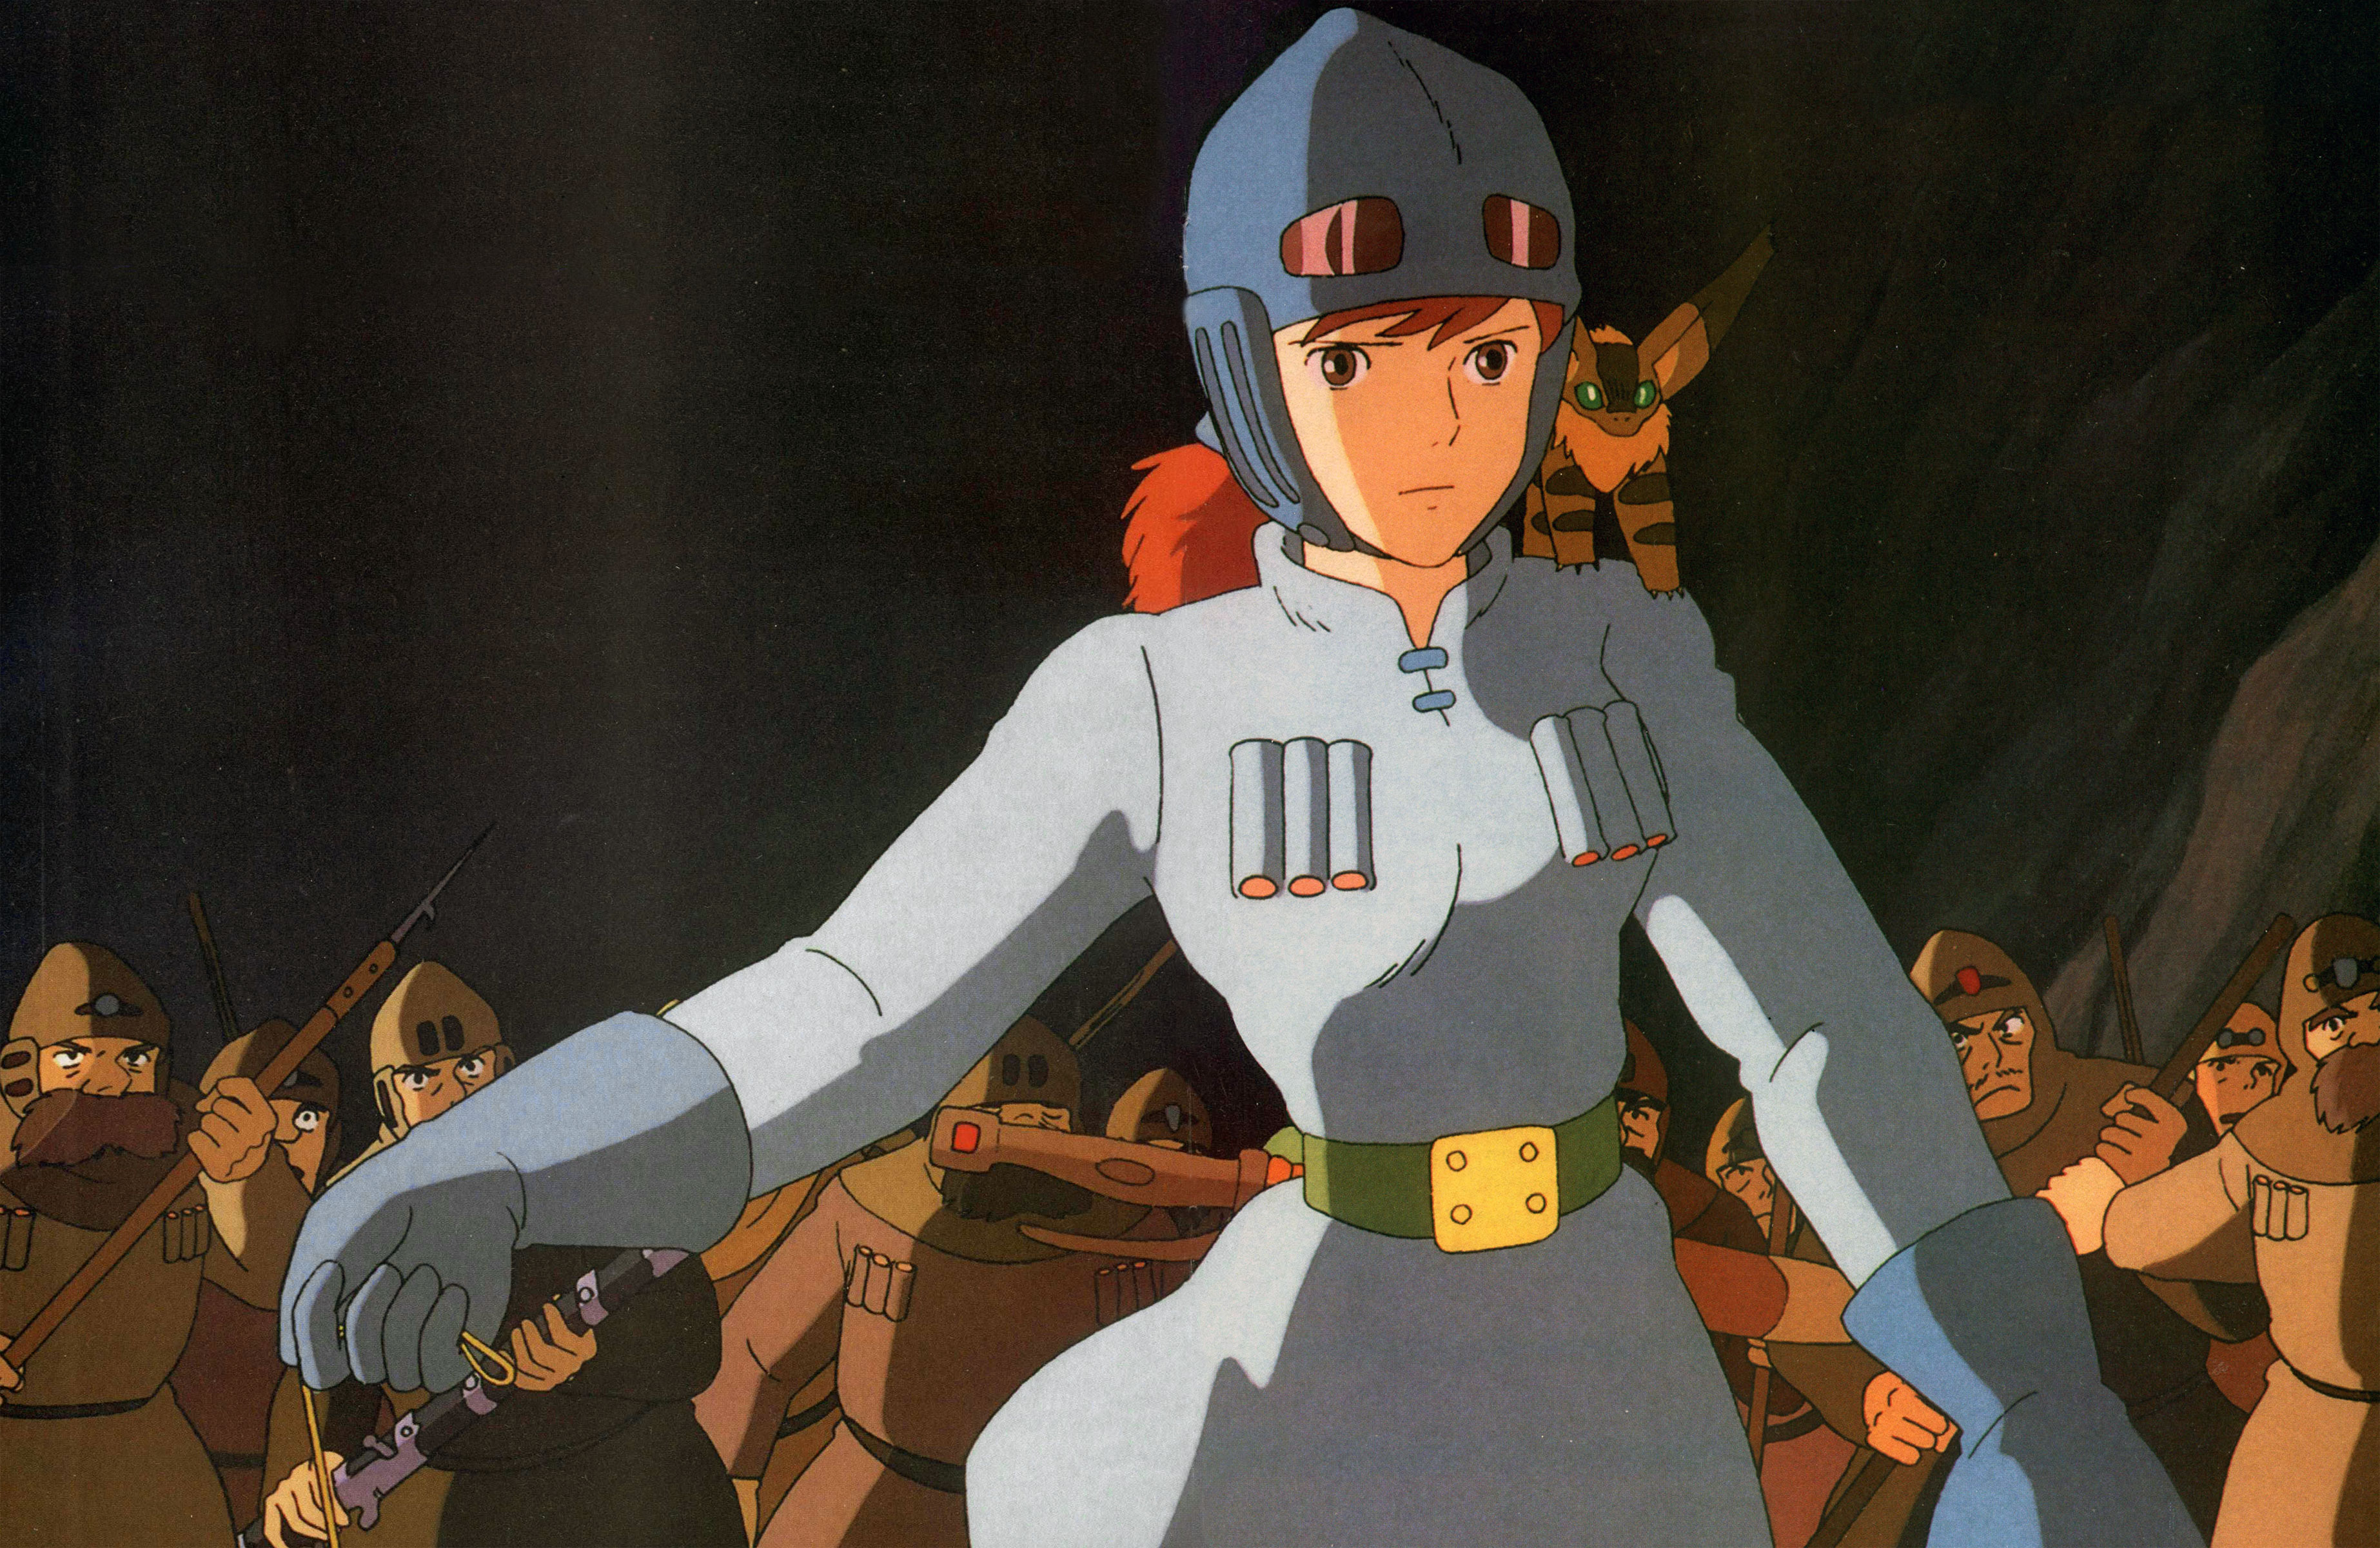 nausicaa of the valley of the wind if i lived in this world i